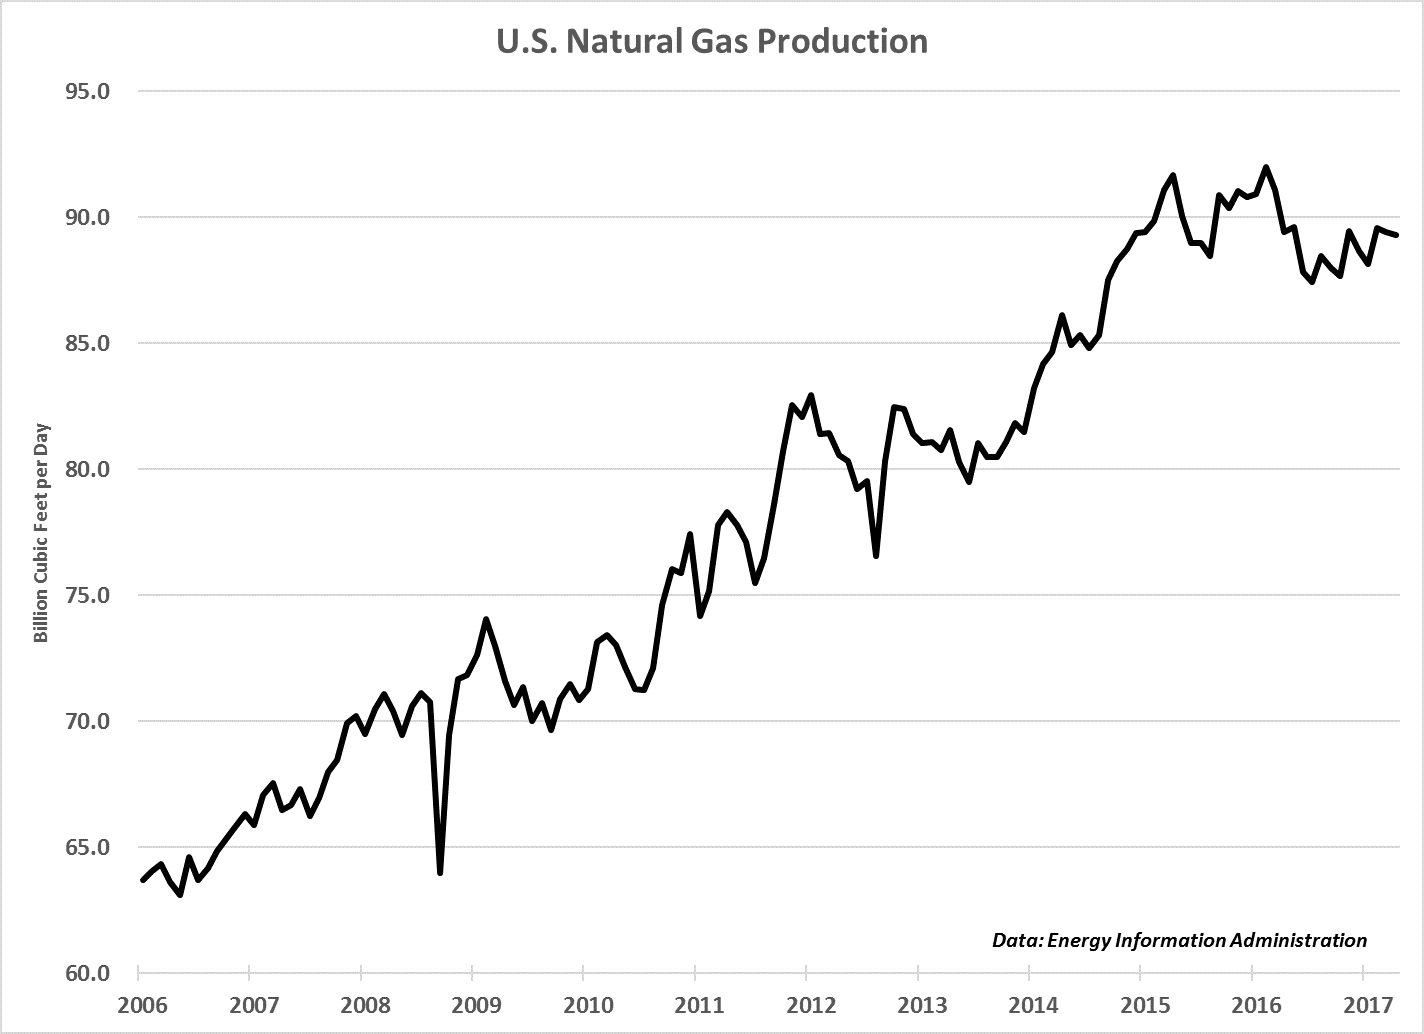 As I discussed back in April, our opportunity was to short natural gas by owning consumers that rely on natural gas for fuel. Turns out, my thesis works.